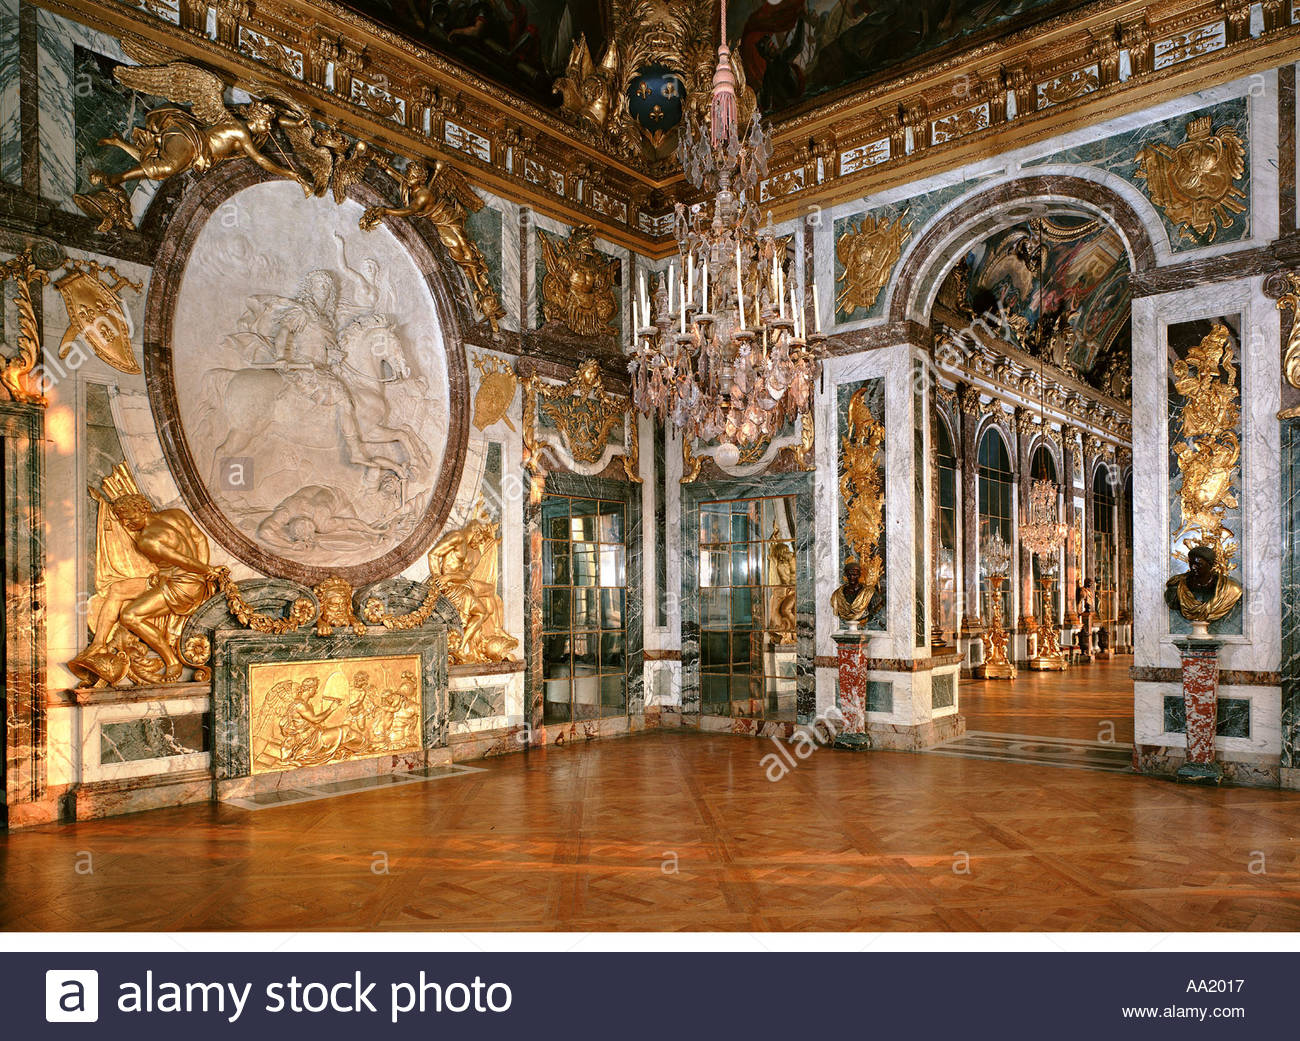 palace of versailles salon de la guerre stock photo